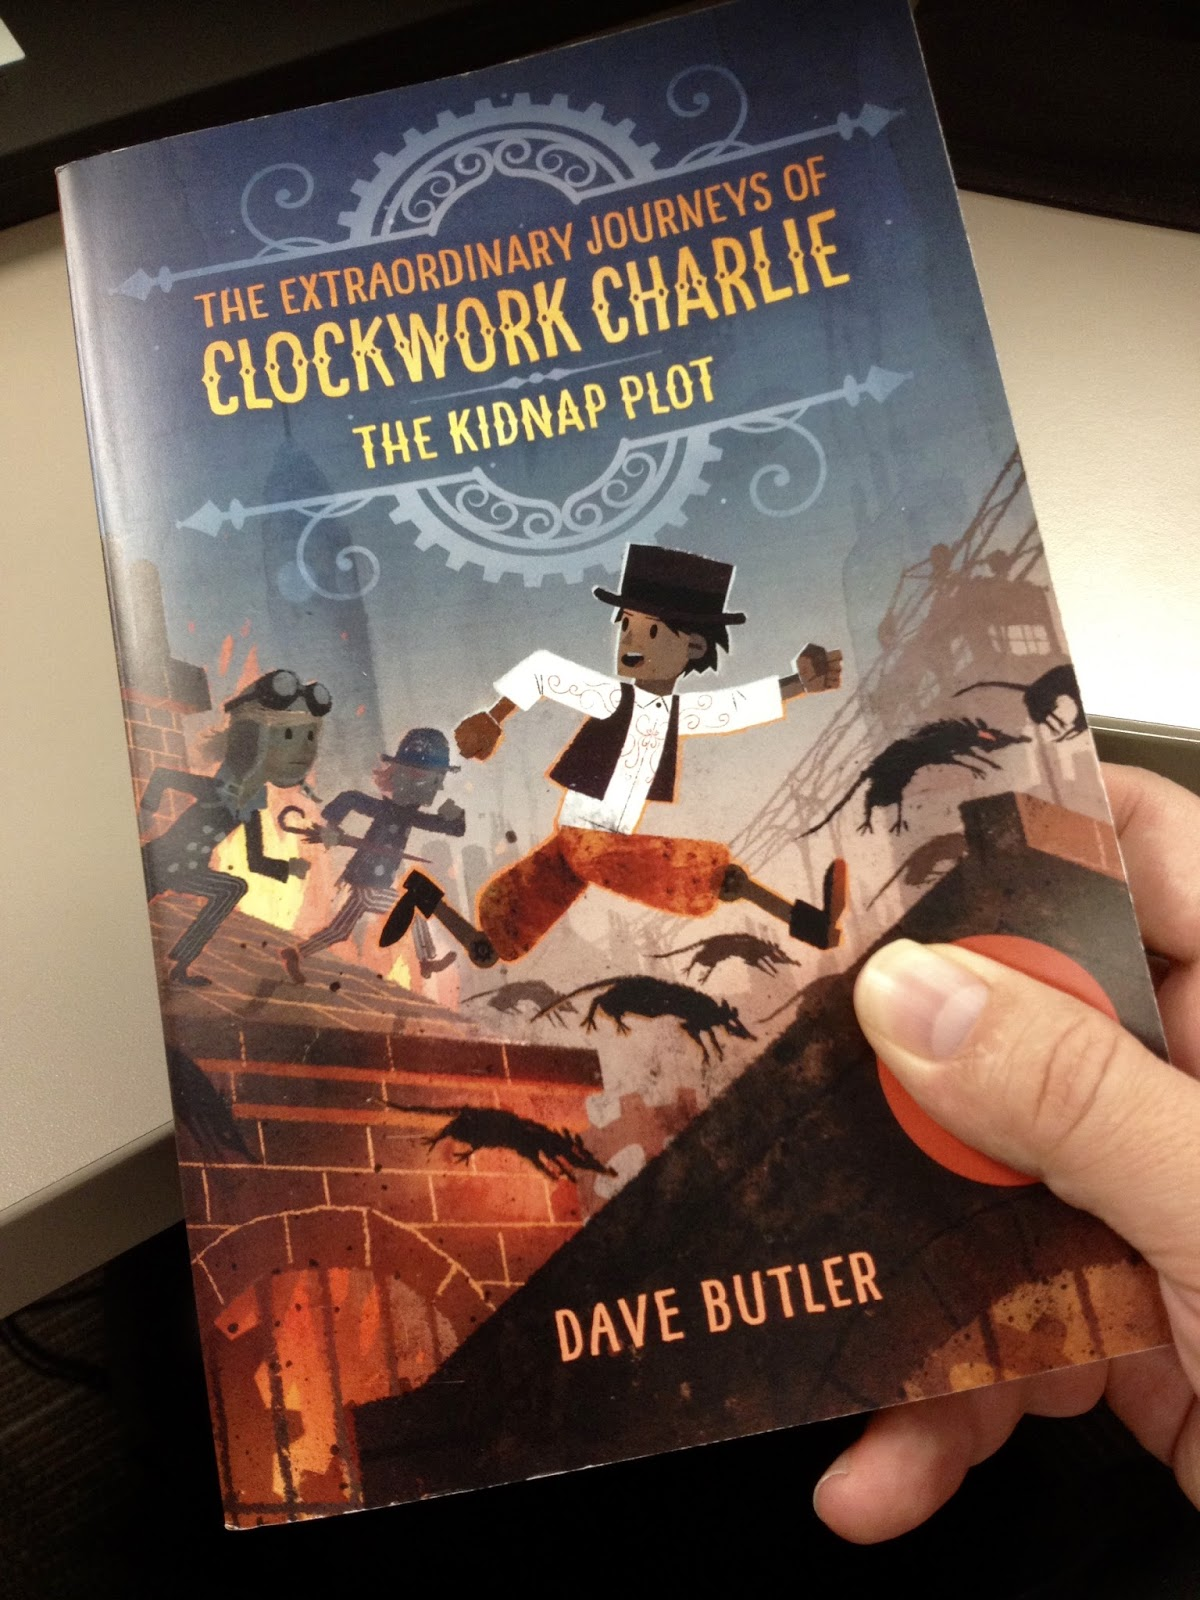 scotty watty doodle all the day  dave butler u0026 39 s  u0026quot clockwork charlie  the kidnap plot u0026quot    a book review